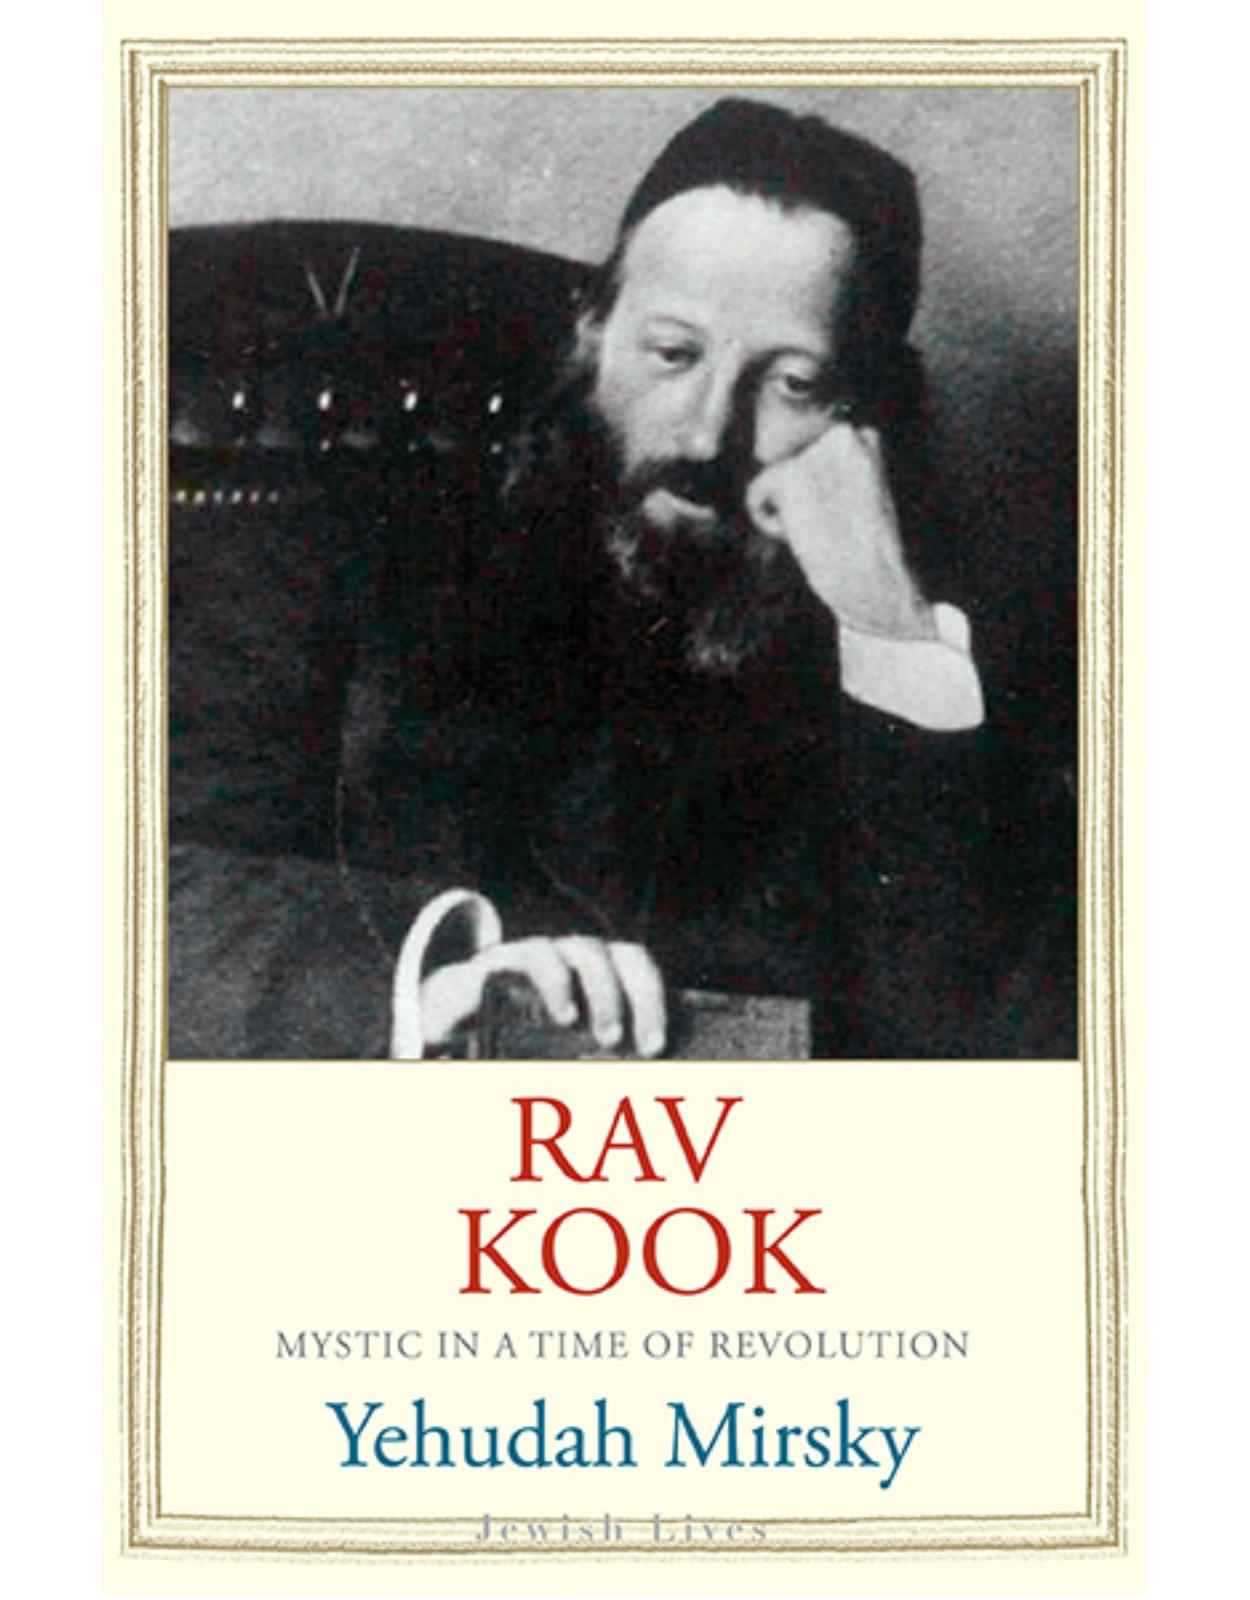 Rav Kook. Everything is Rising